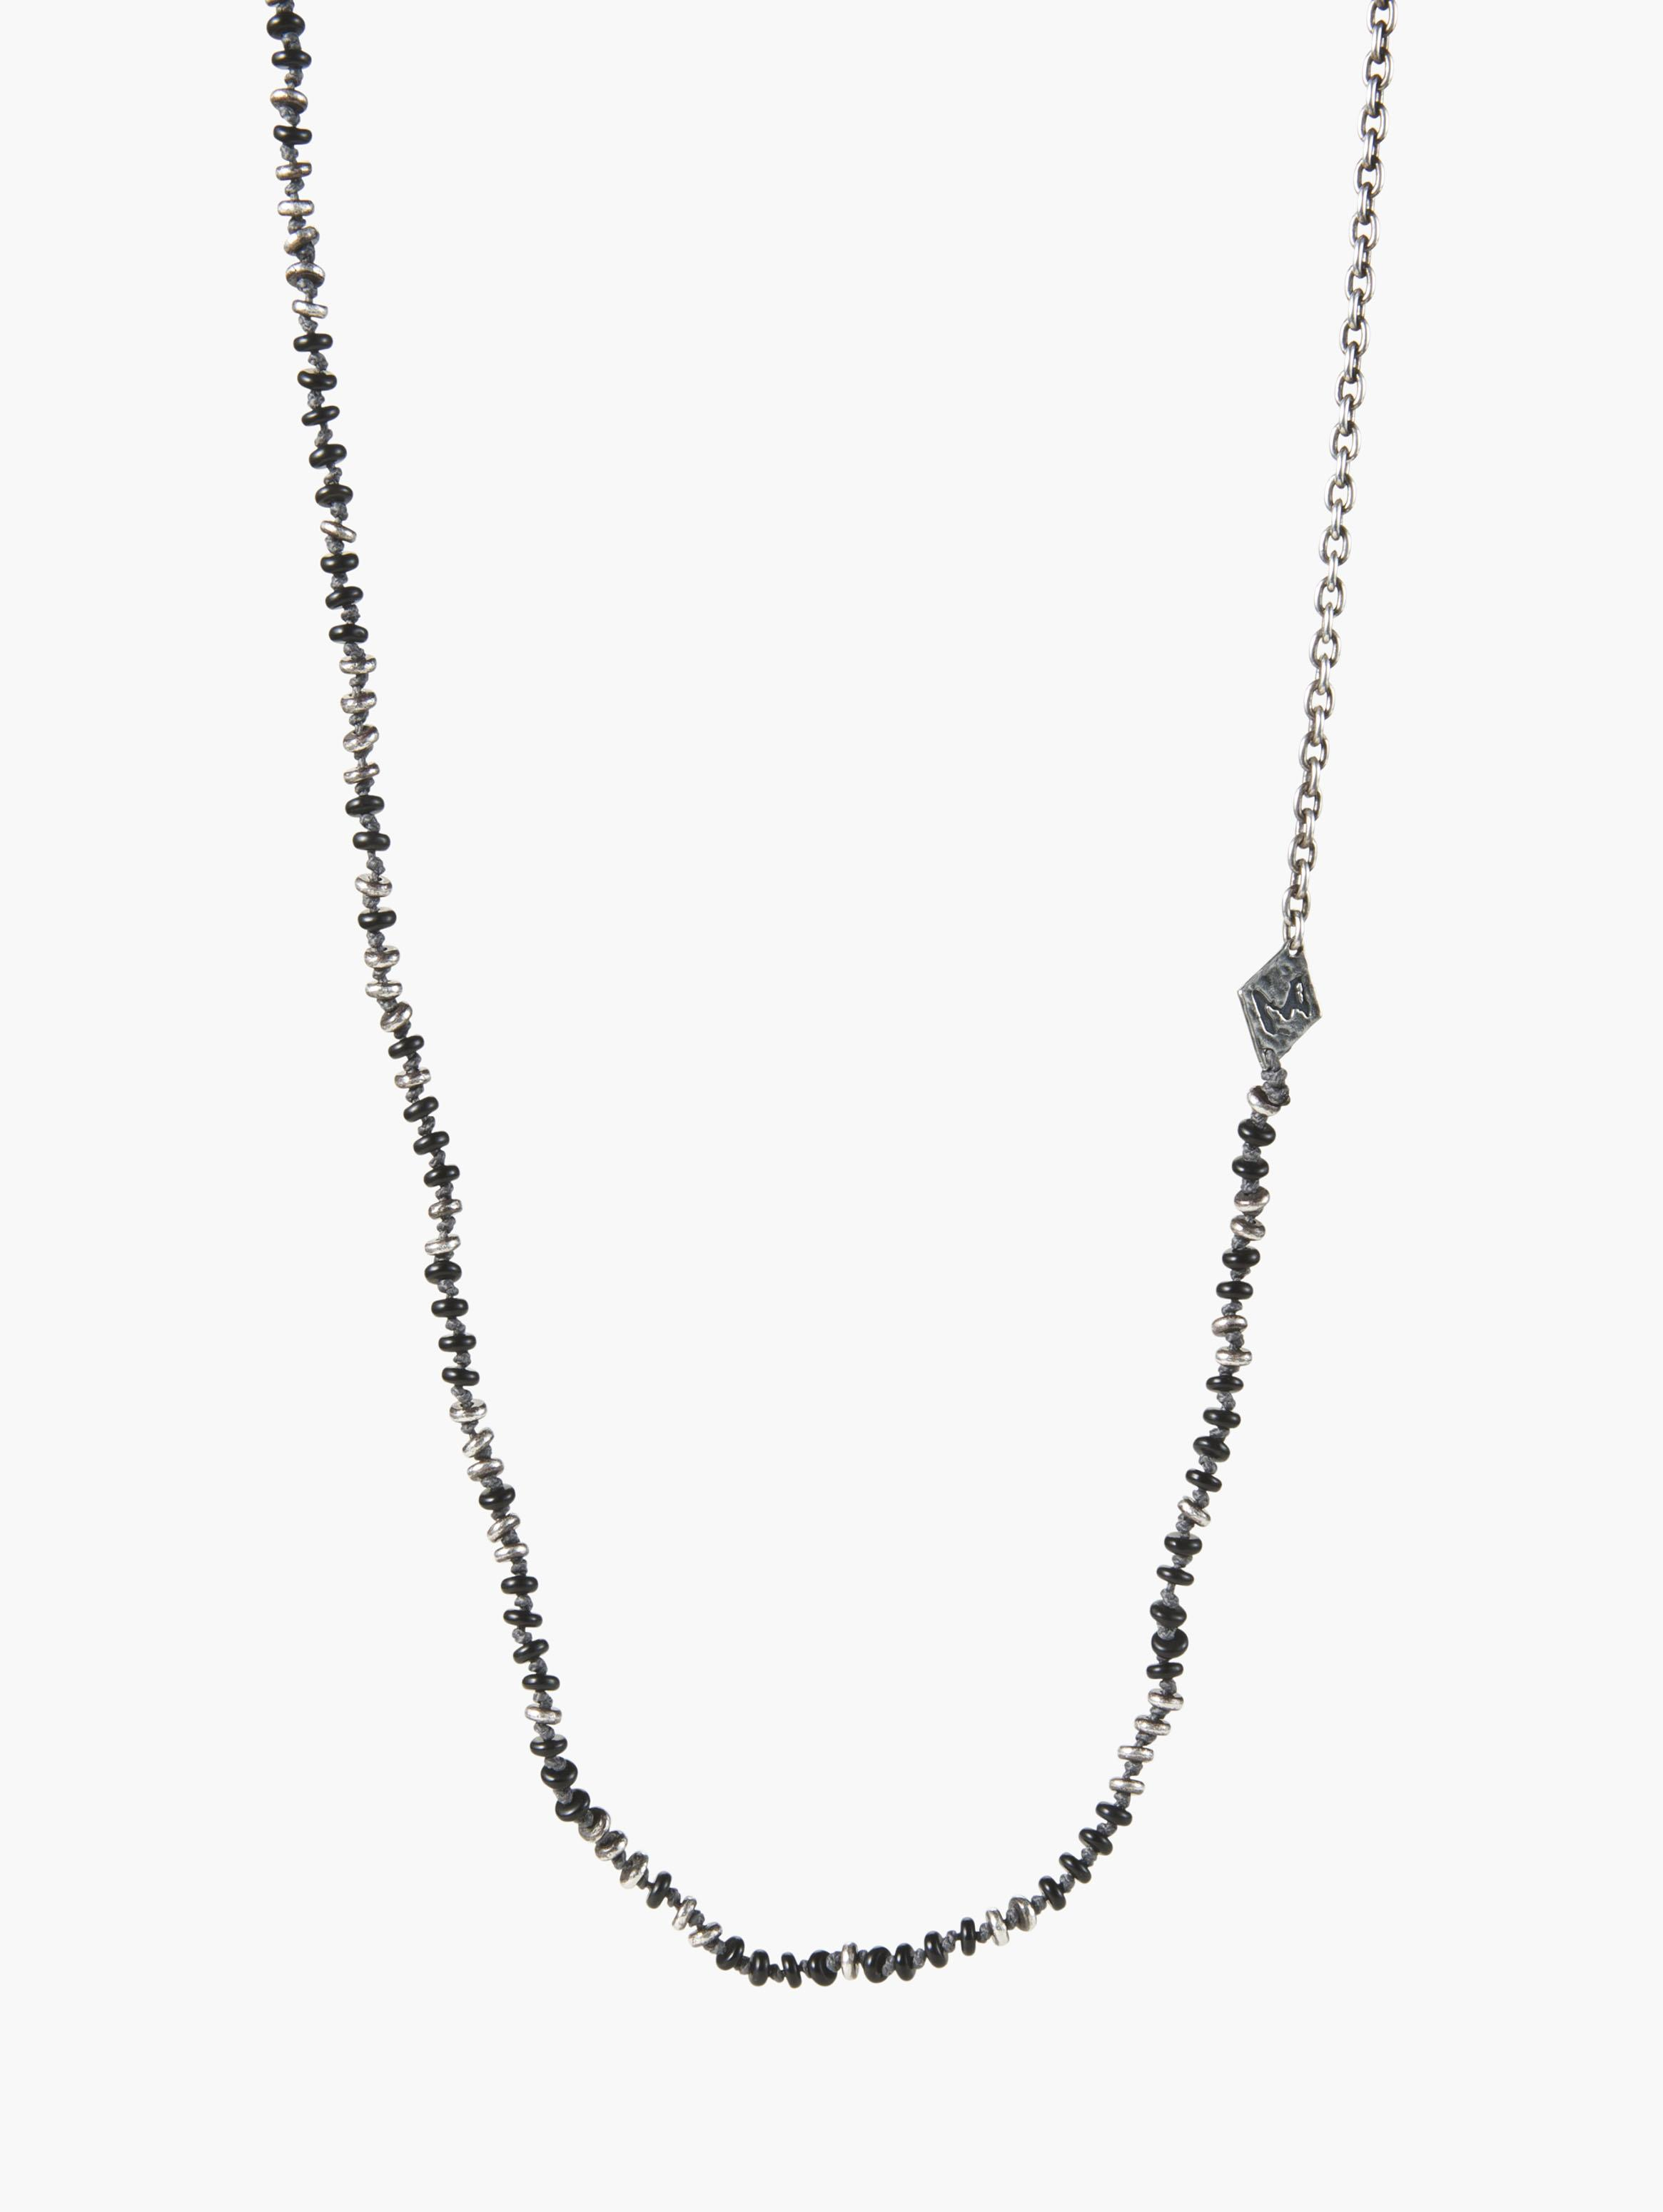 Knotted Gemstone Silver Link Necklace